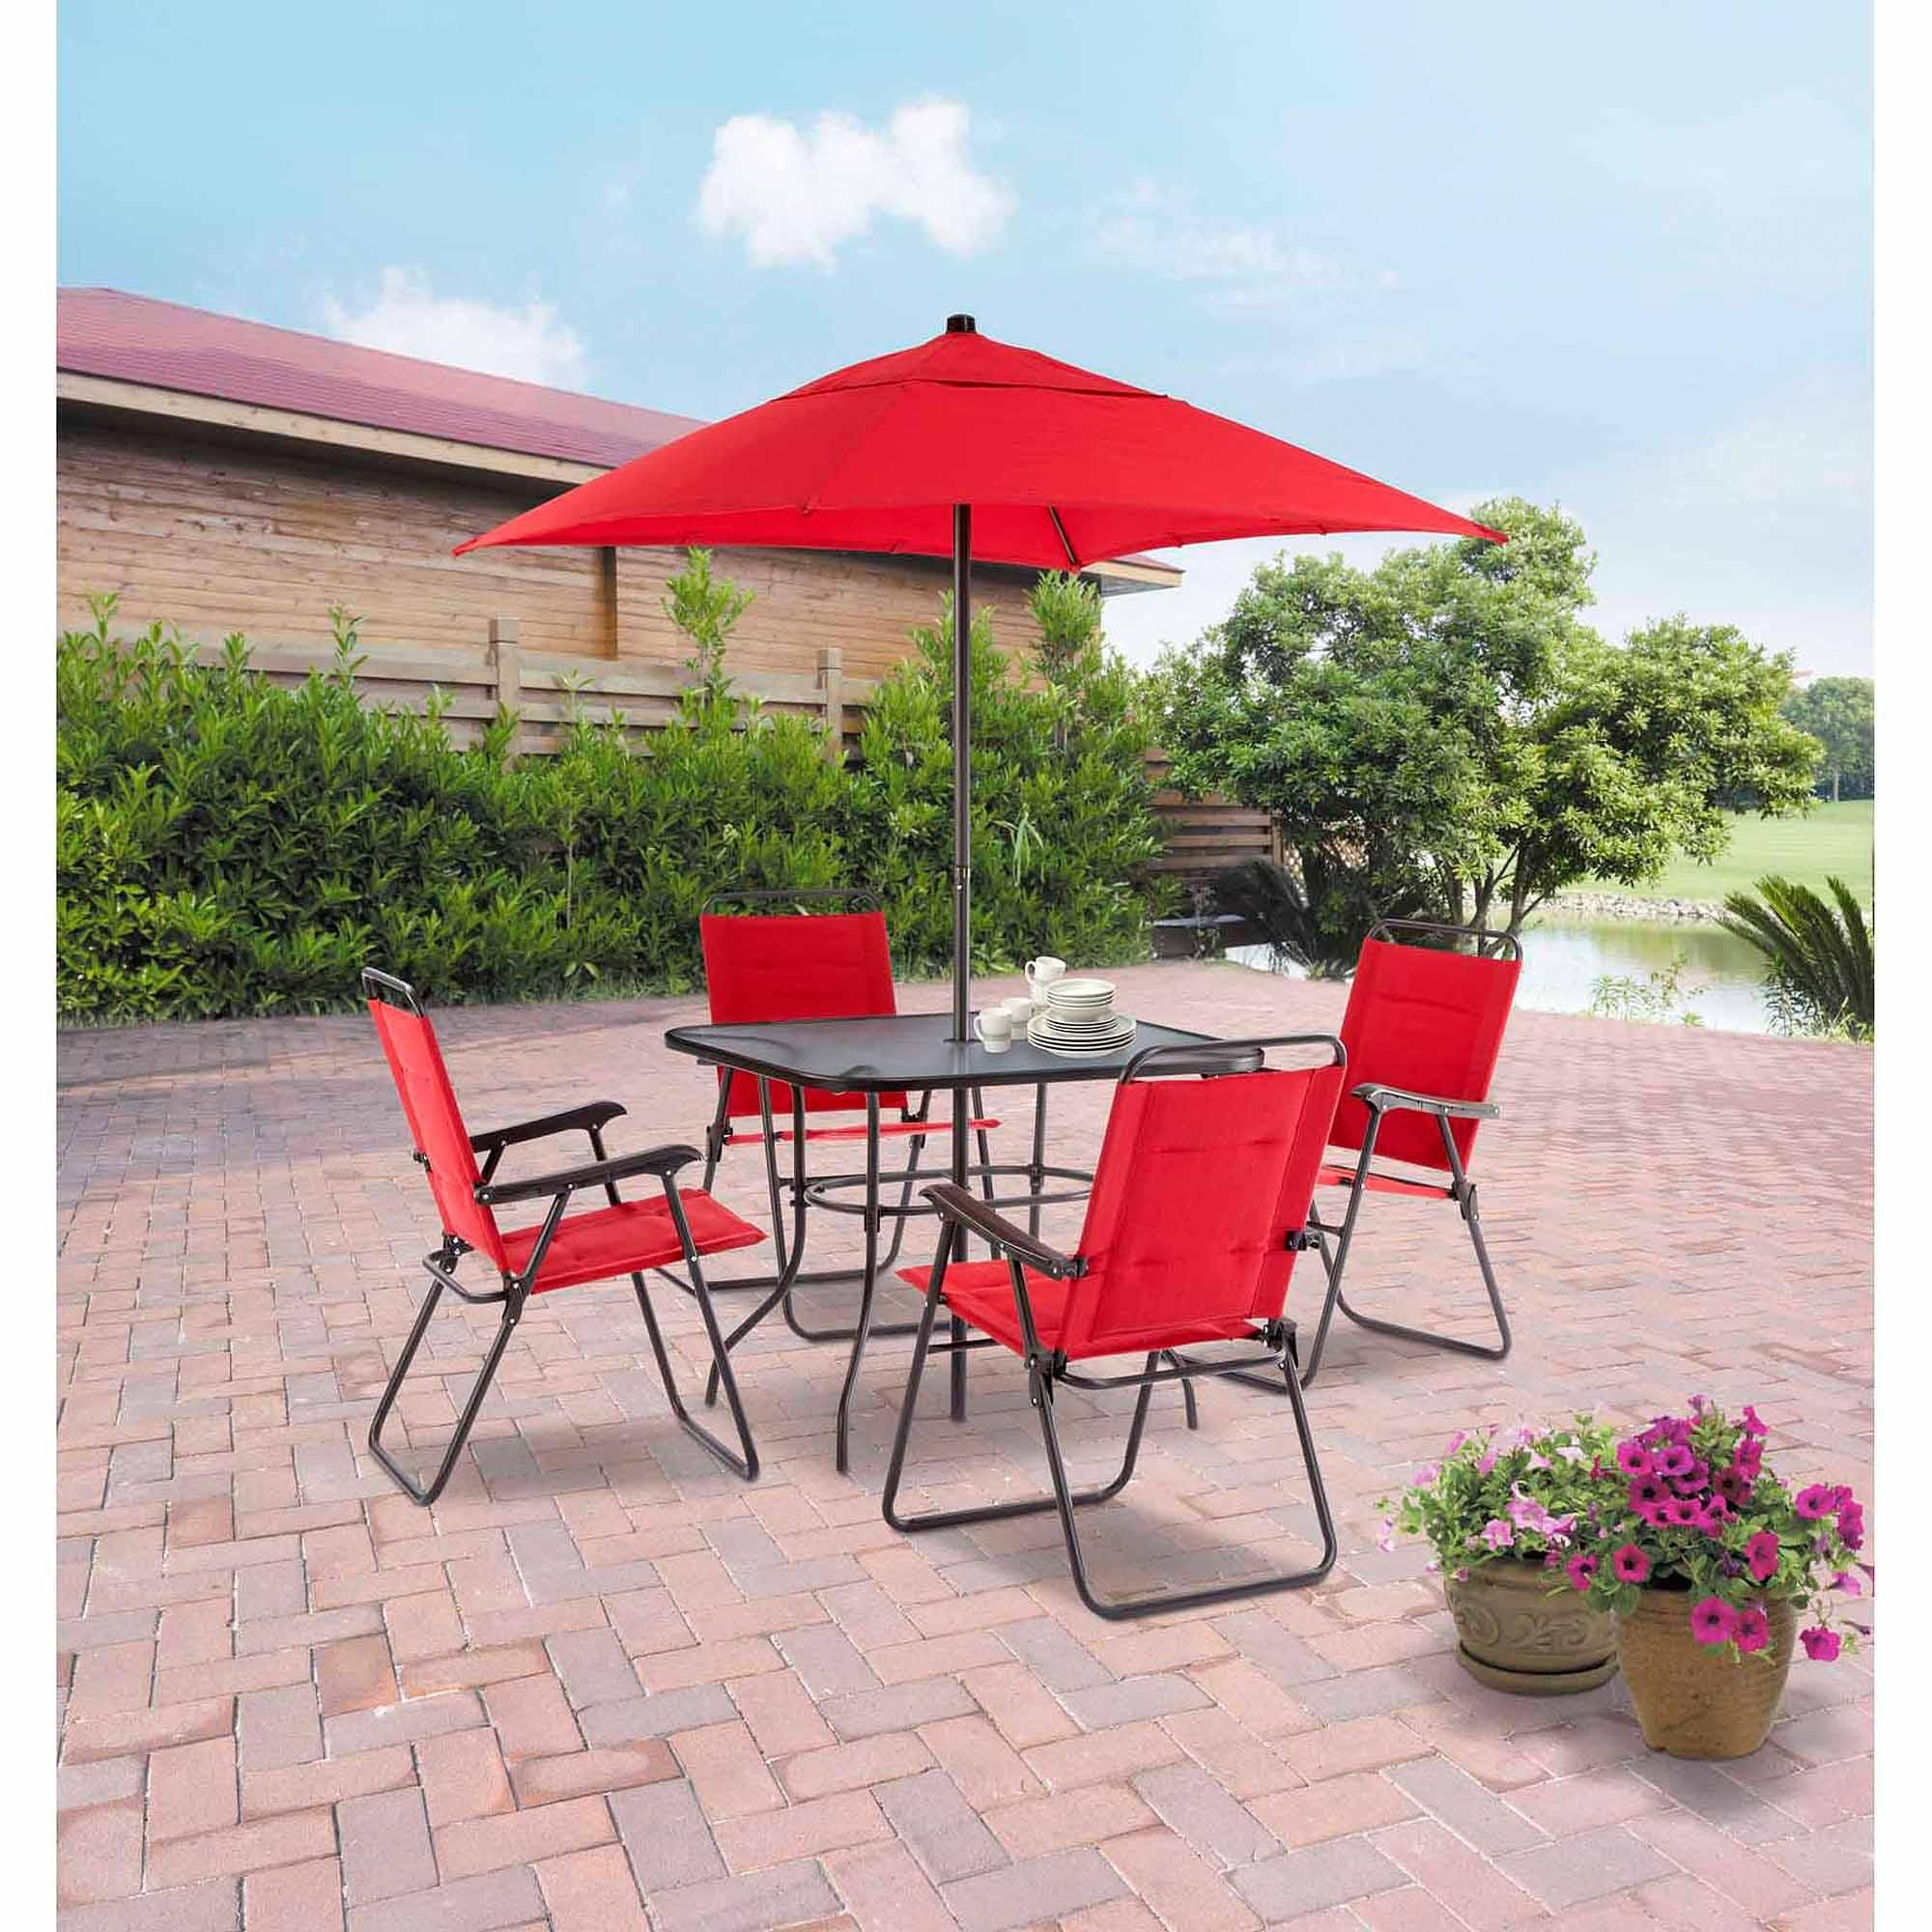 Outdoor Furniture Sale Walmart Best Spray Paint for Wood